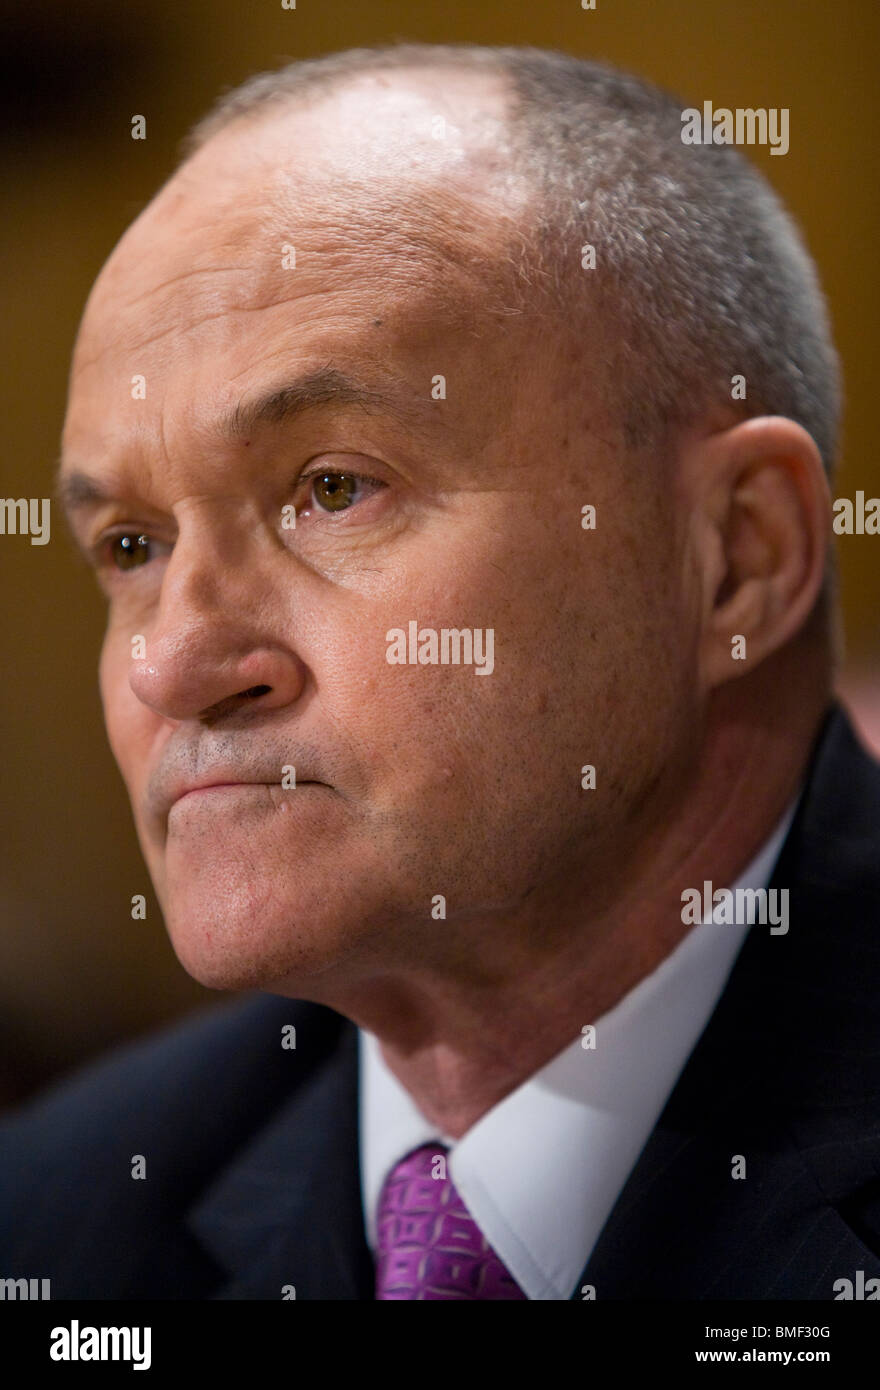 New York City Police Department Commissioner Raymond Kelly. - Stock Image